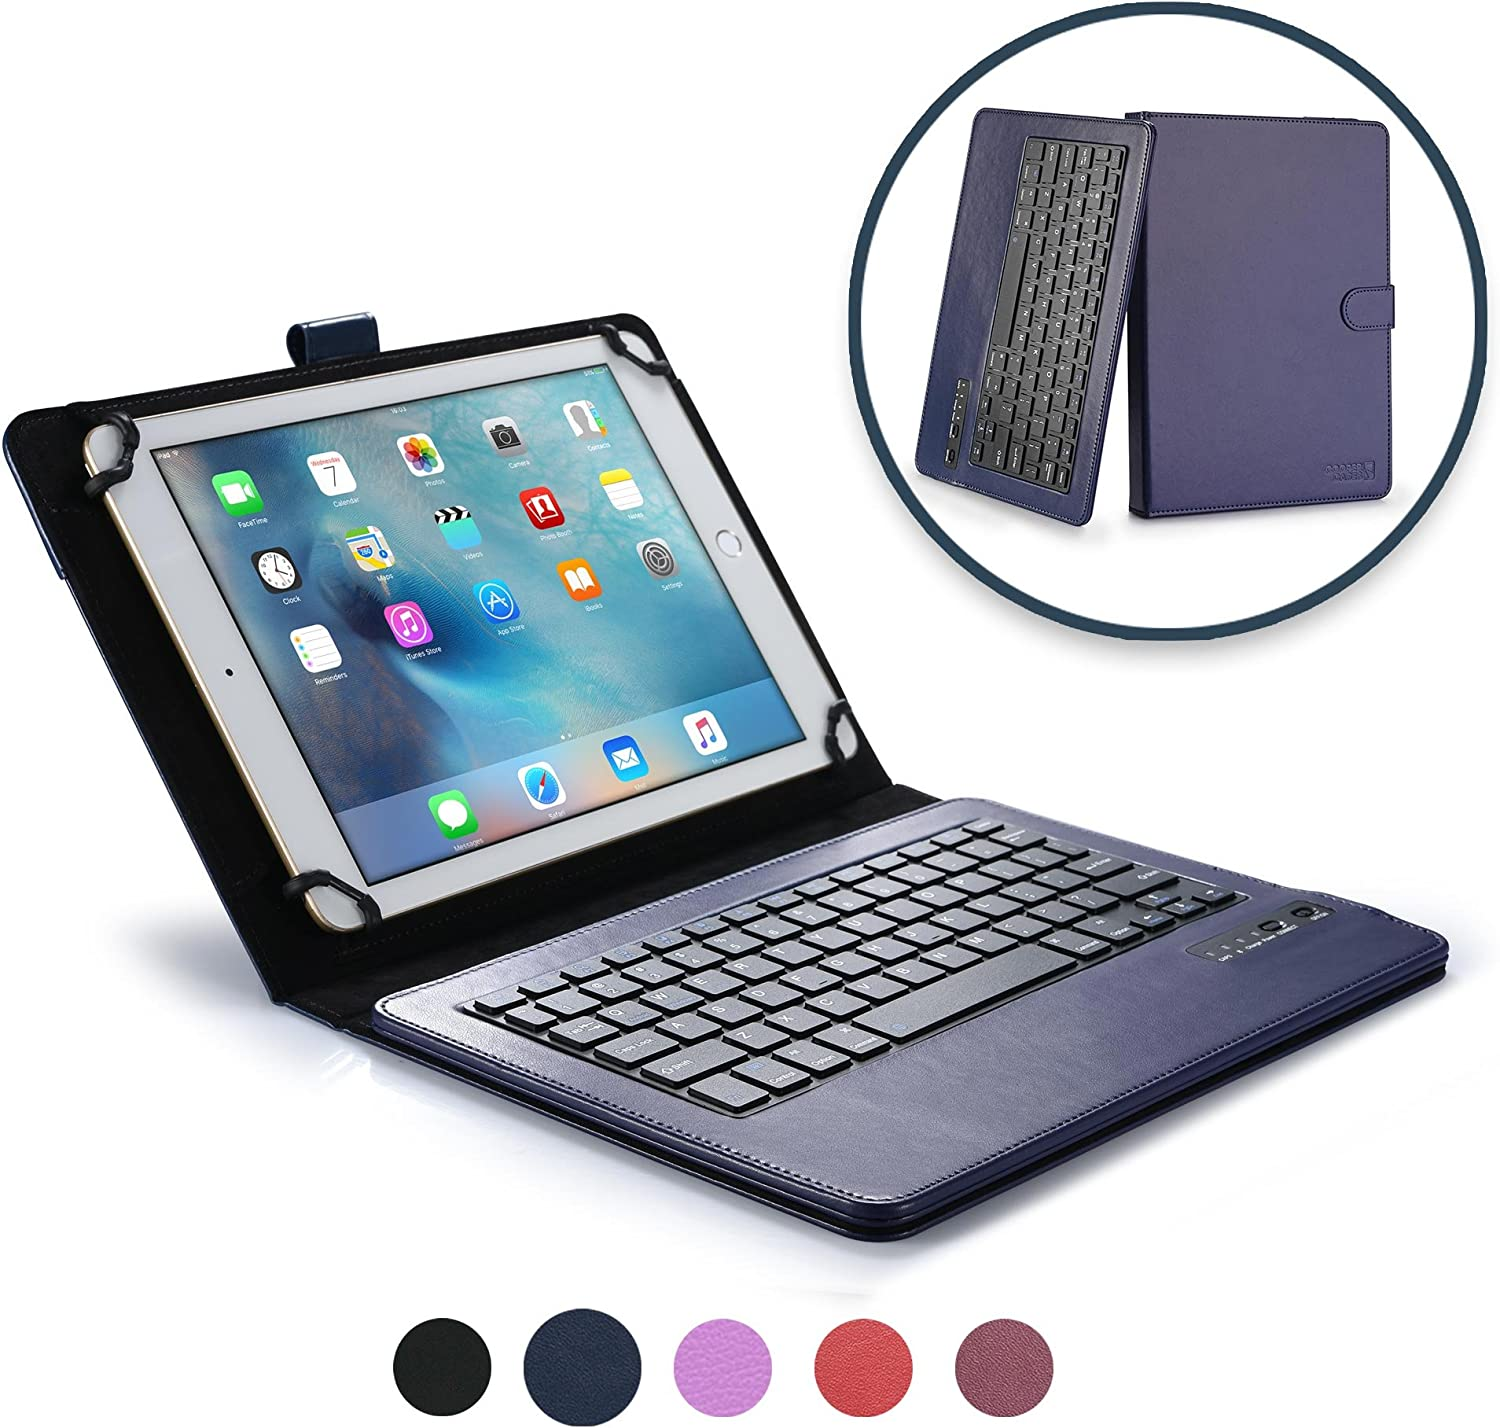 Cooper Infinite Executive Keyboard Case for 9'', 10'', 10.1'' Tablets | 2-in-1 Bluetooth Wireless Keyboard & Leather Folio Cover (Dark Blue)